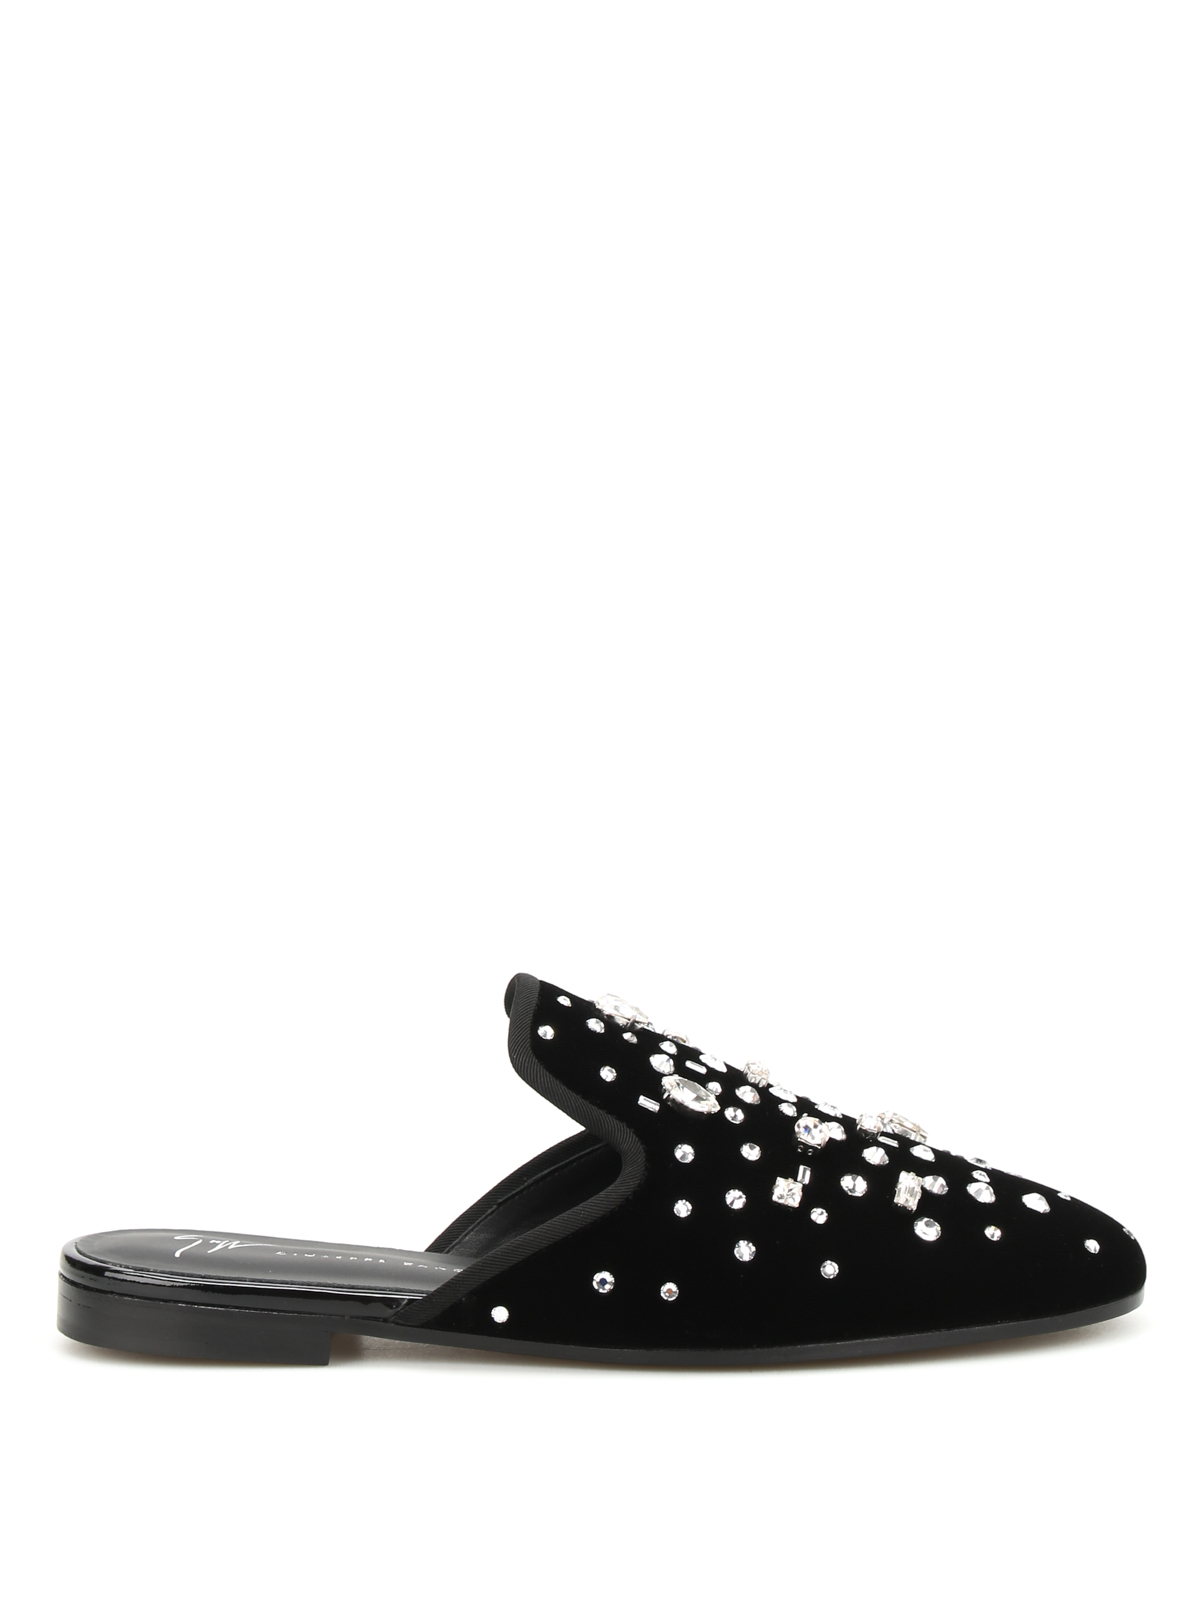 Giuseppe Zanotti Embellished Velvet Mules the best store to get lowest price sale online cheap sale manchester great sale clearance lowest price outlet locations online pcSuMvpweQ